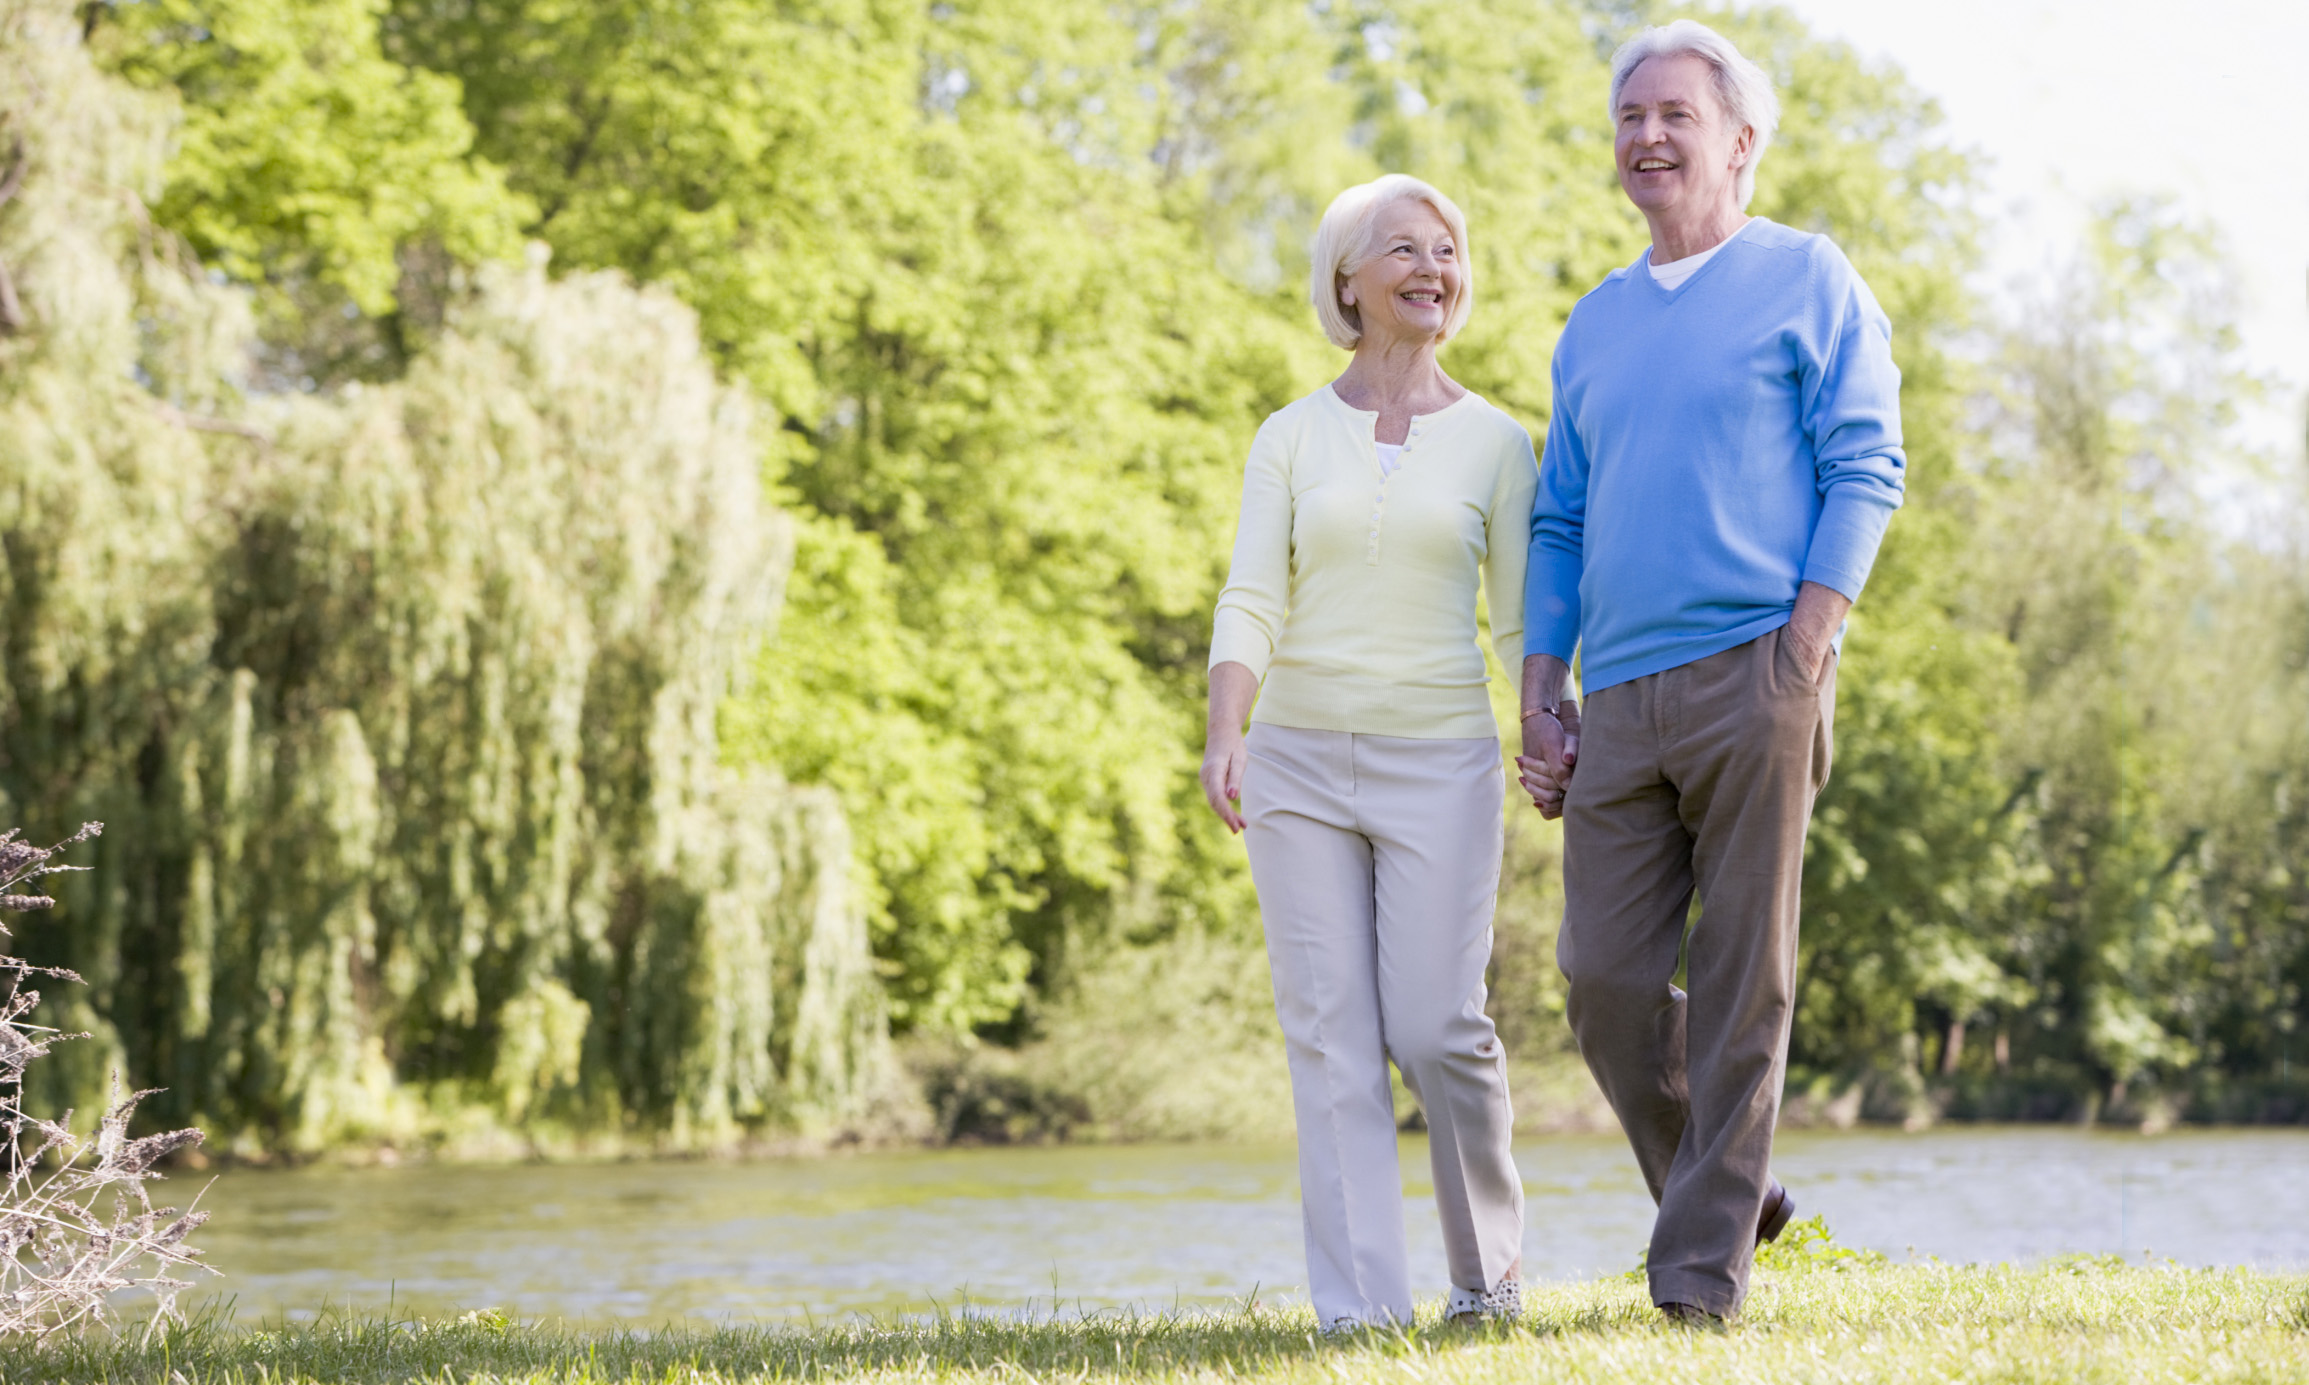 Elderly-Couple-Walk-Lake-Park-End-Of-Life-Plan-Spry12